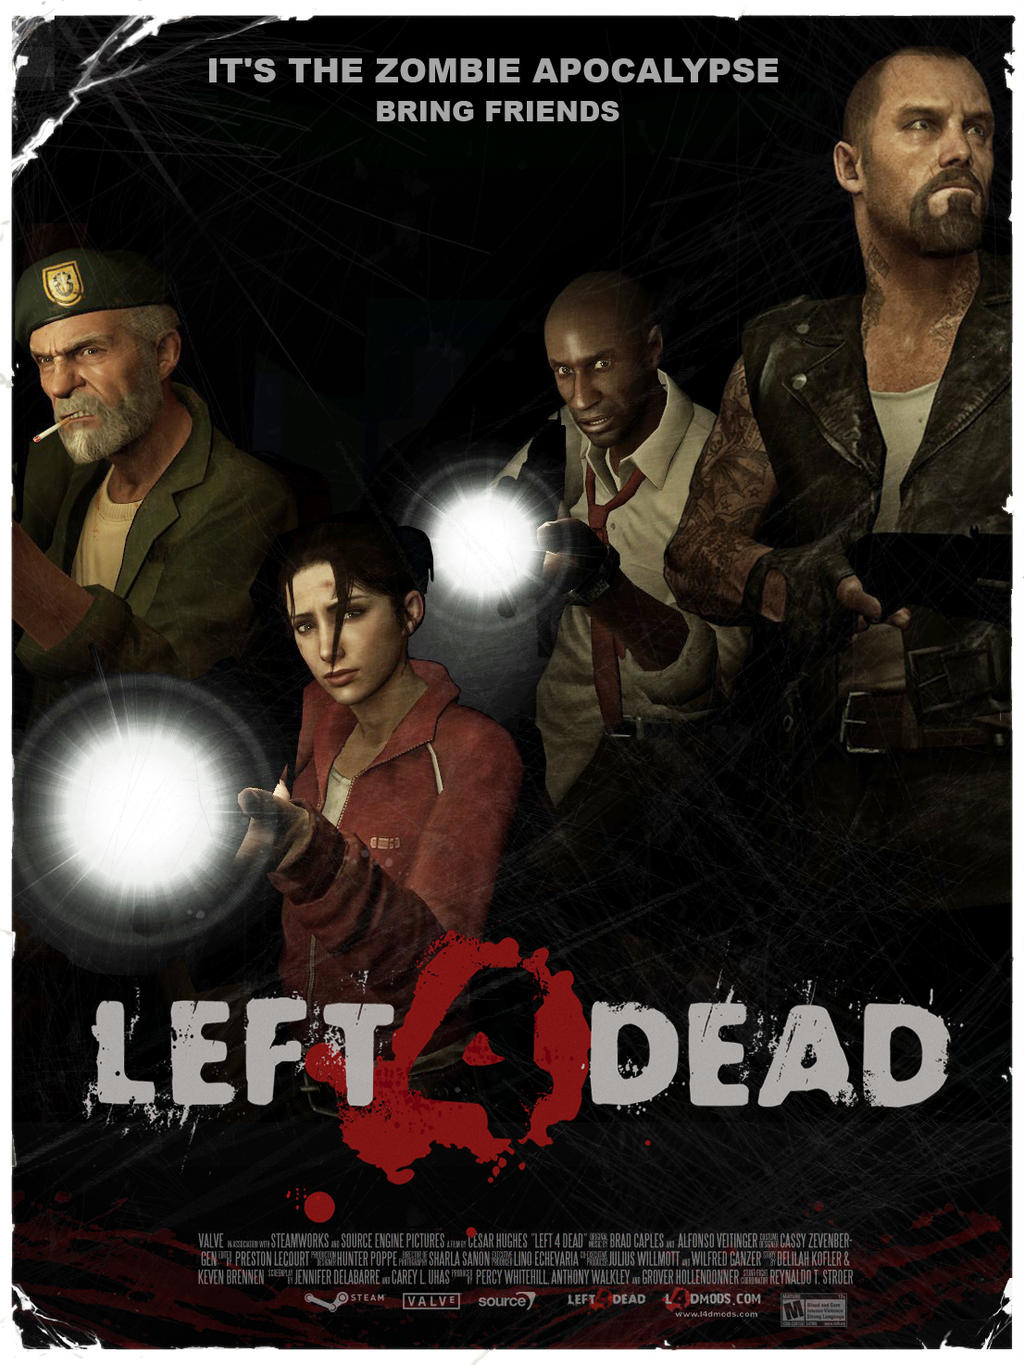 LEFT_4_DEAD_movie_poster_L4D_by_The_Loiterer.jpg